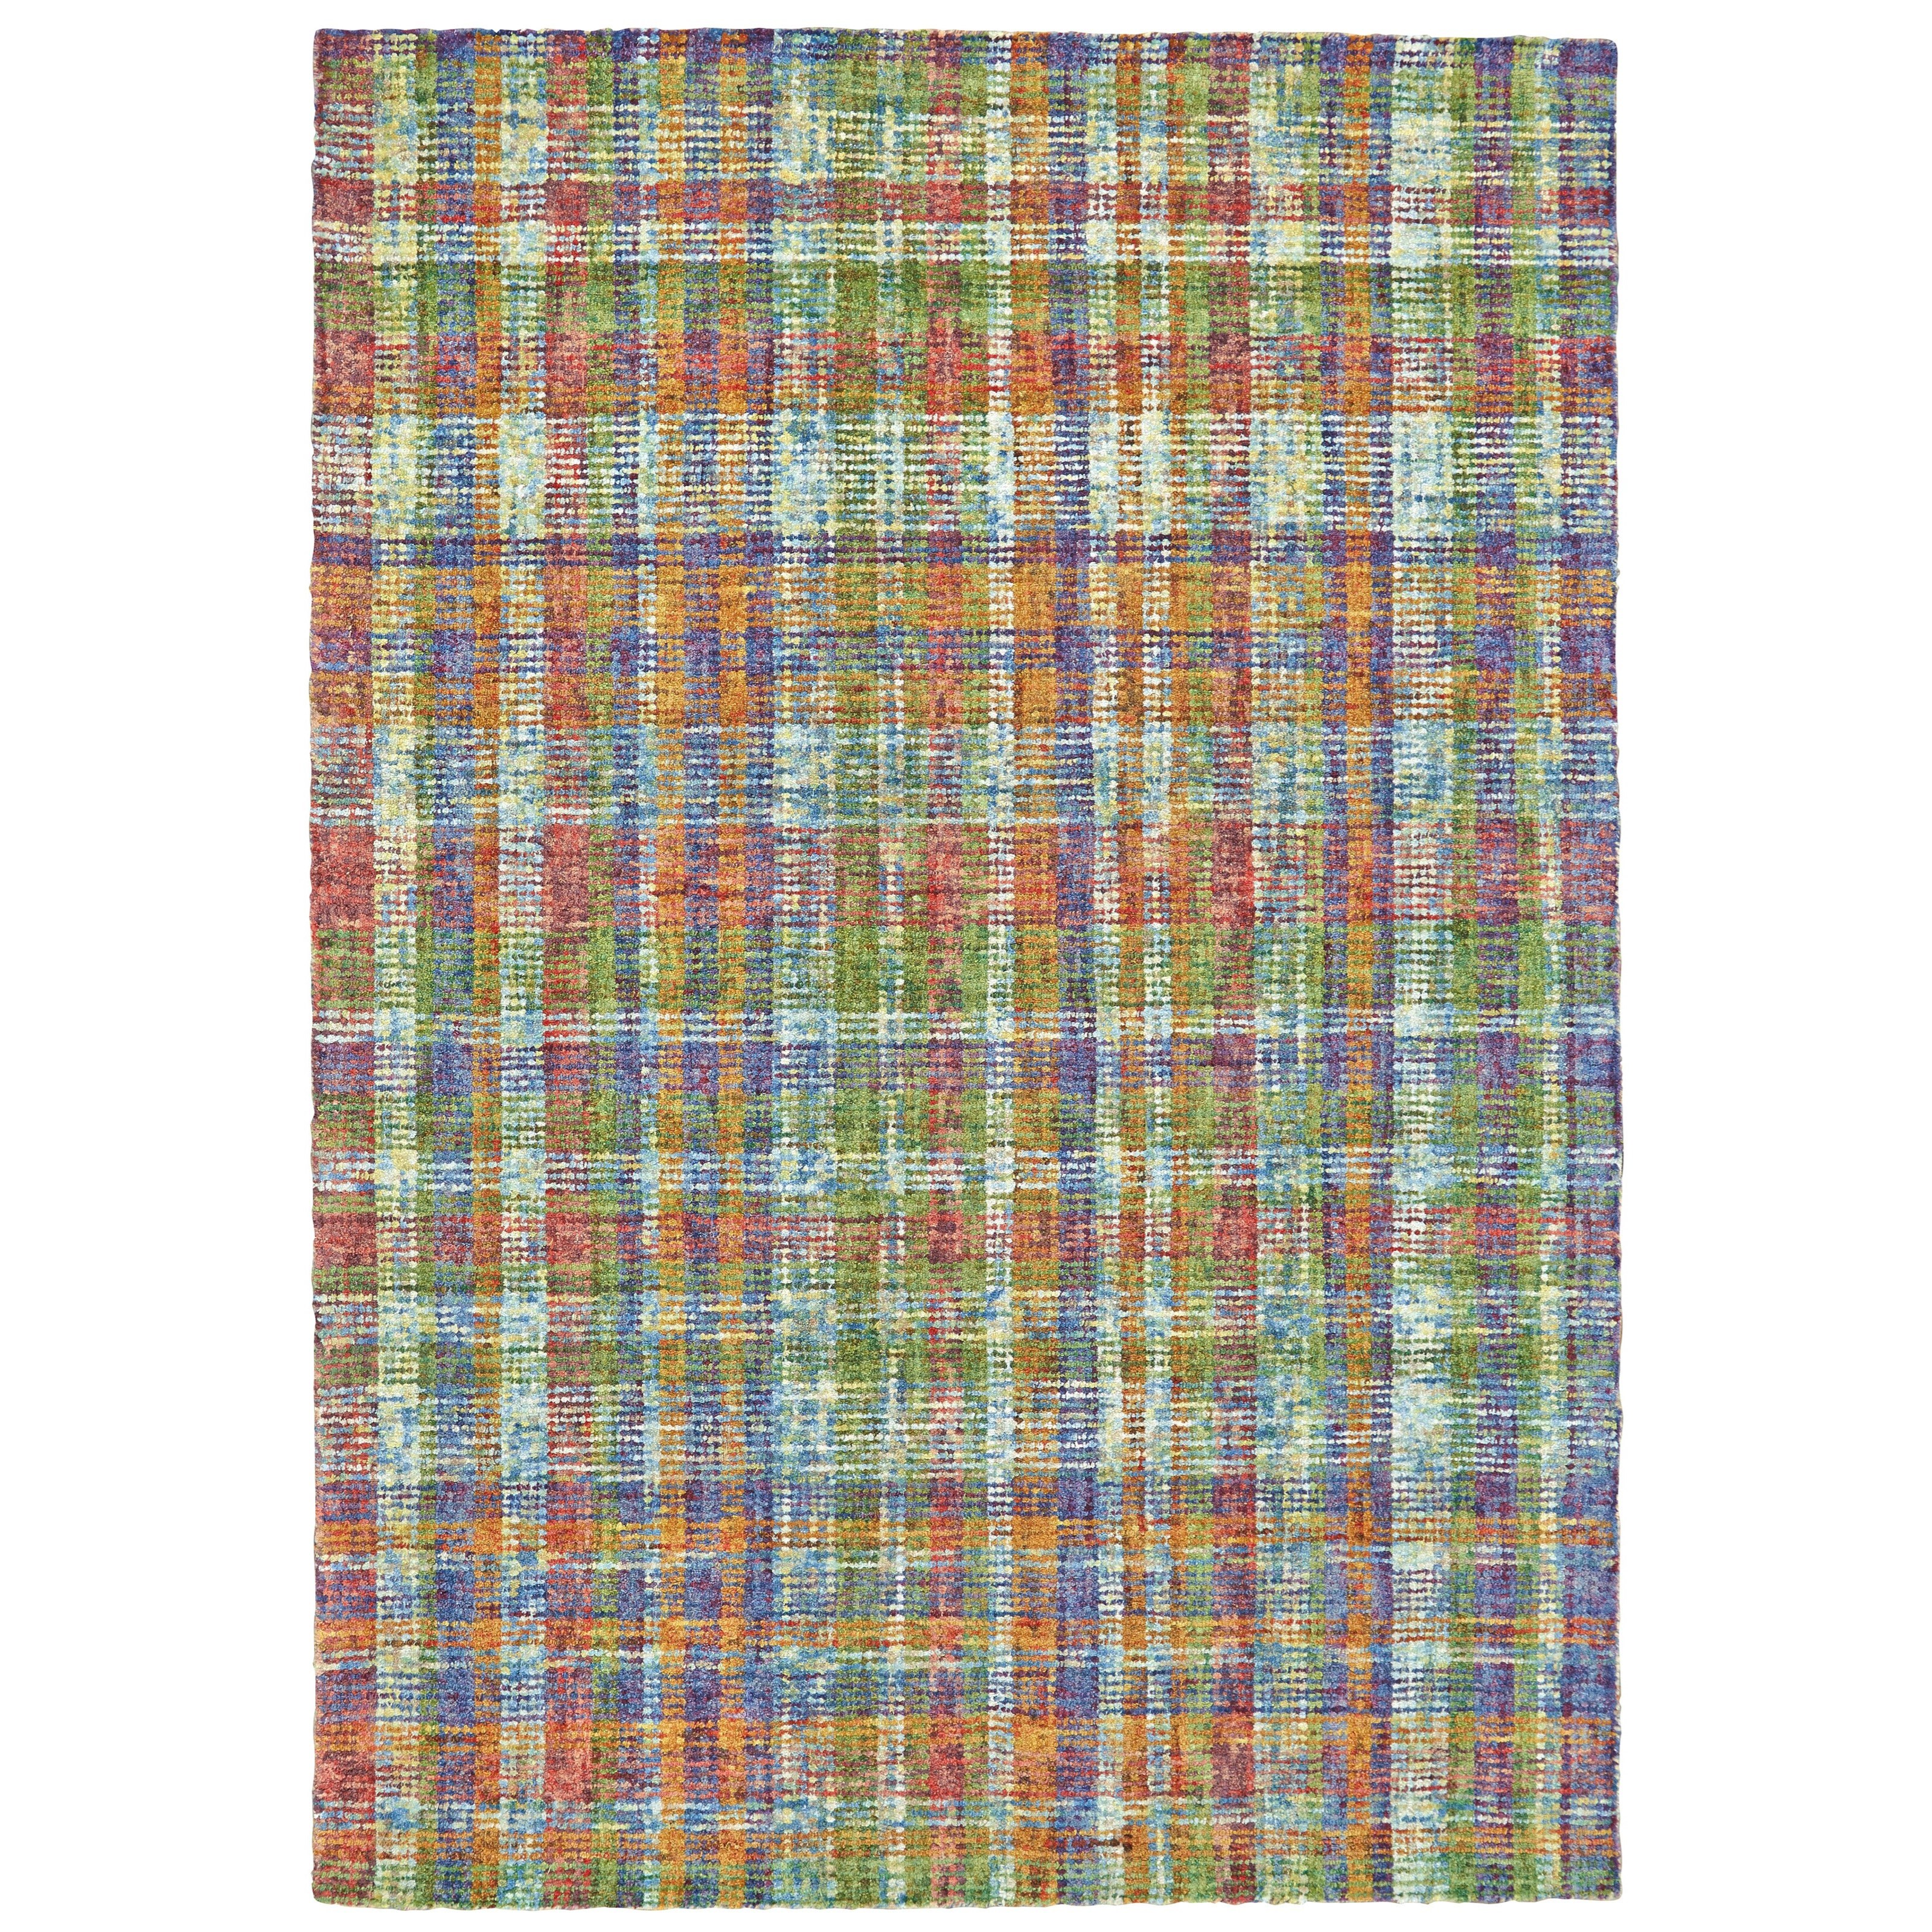 "St. Germaine Macaron 9'-6"" x 13'-6"" Area Rug by Feizy Rugs at Sprintz Furniture"